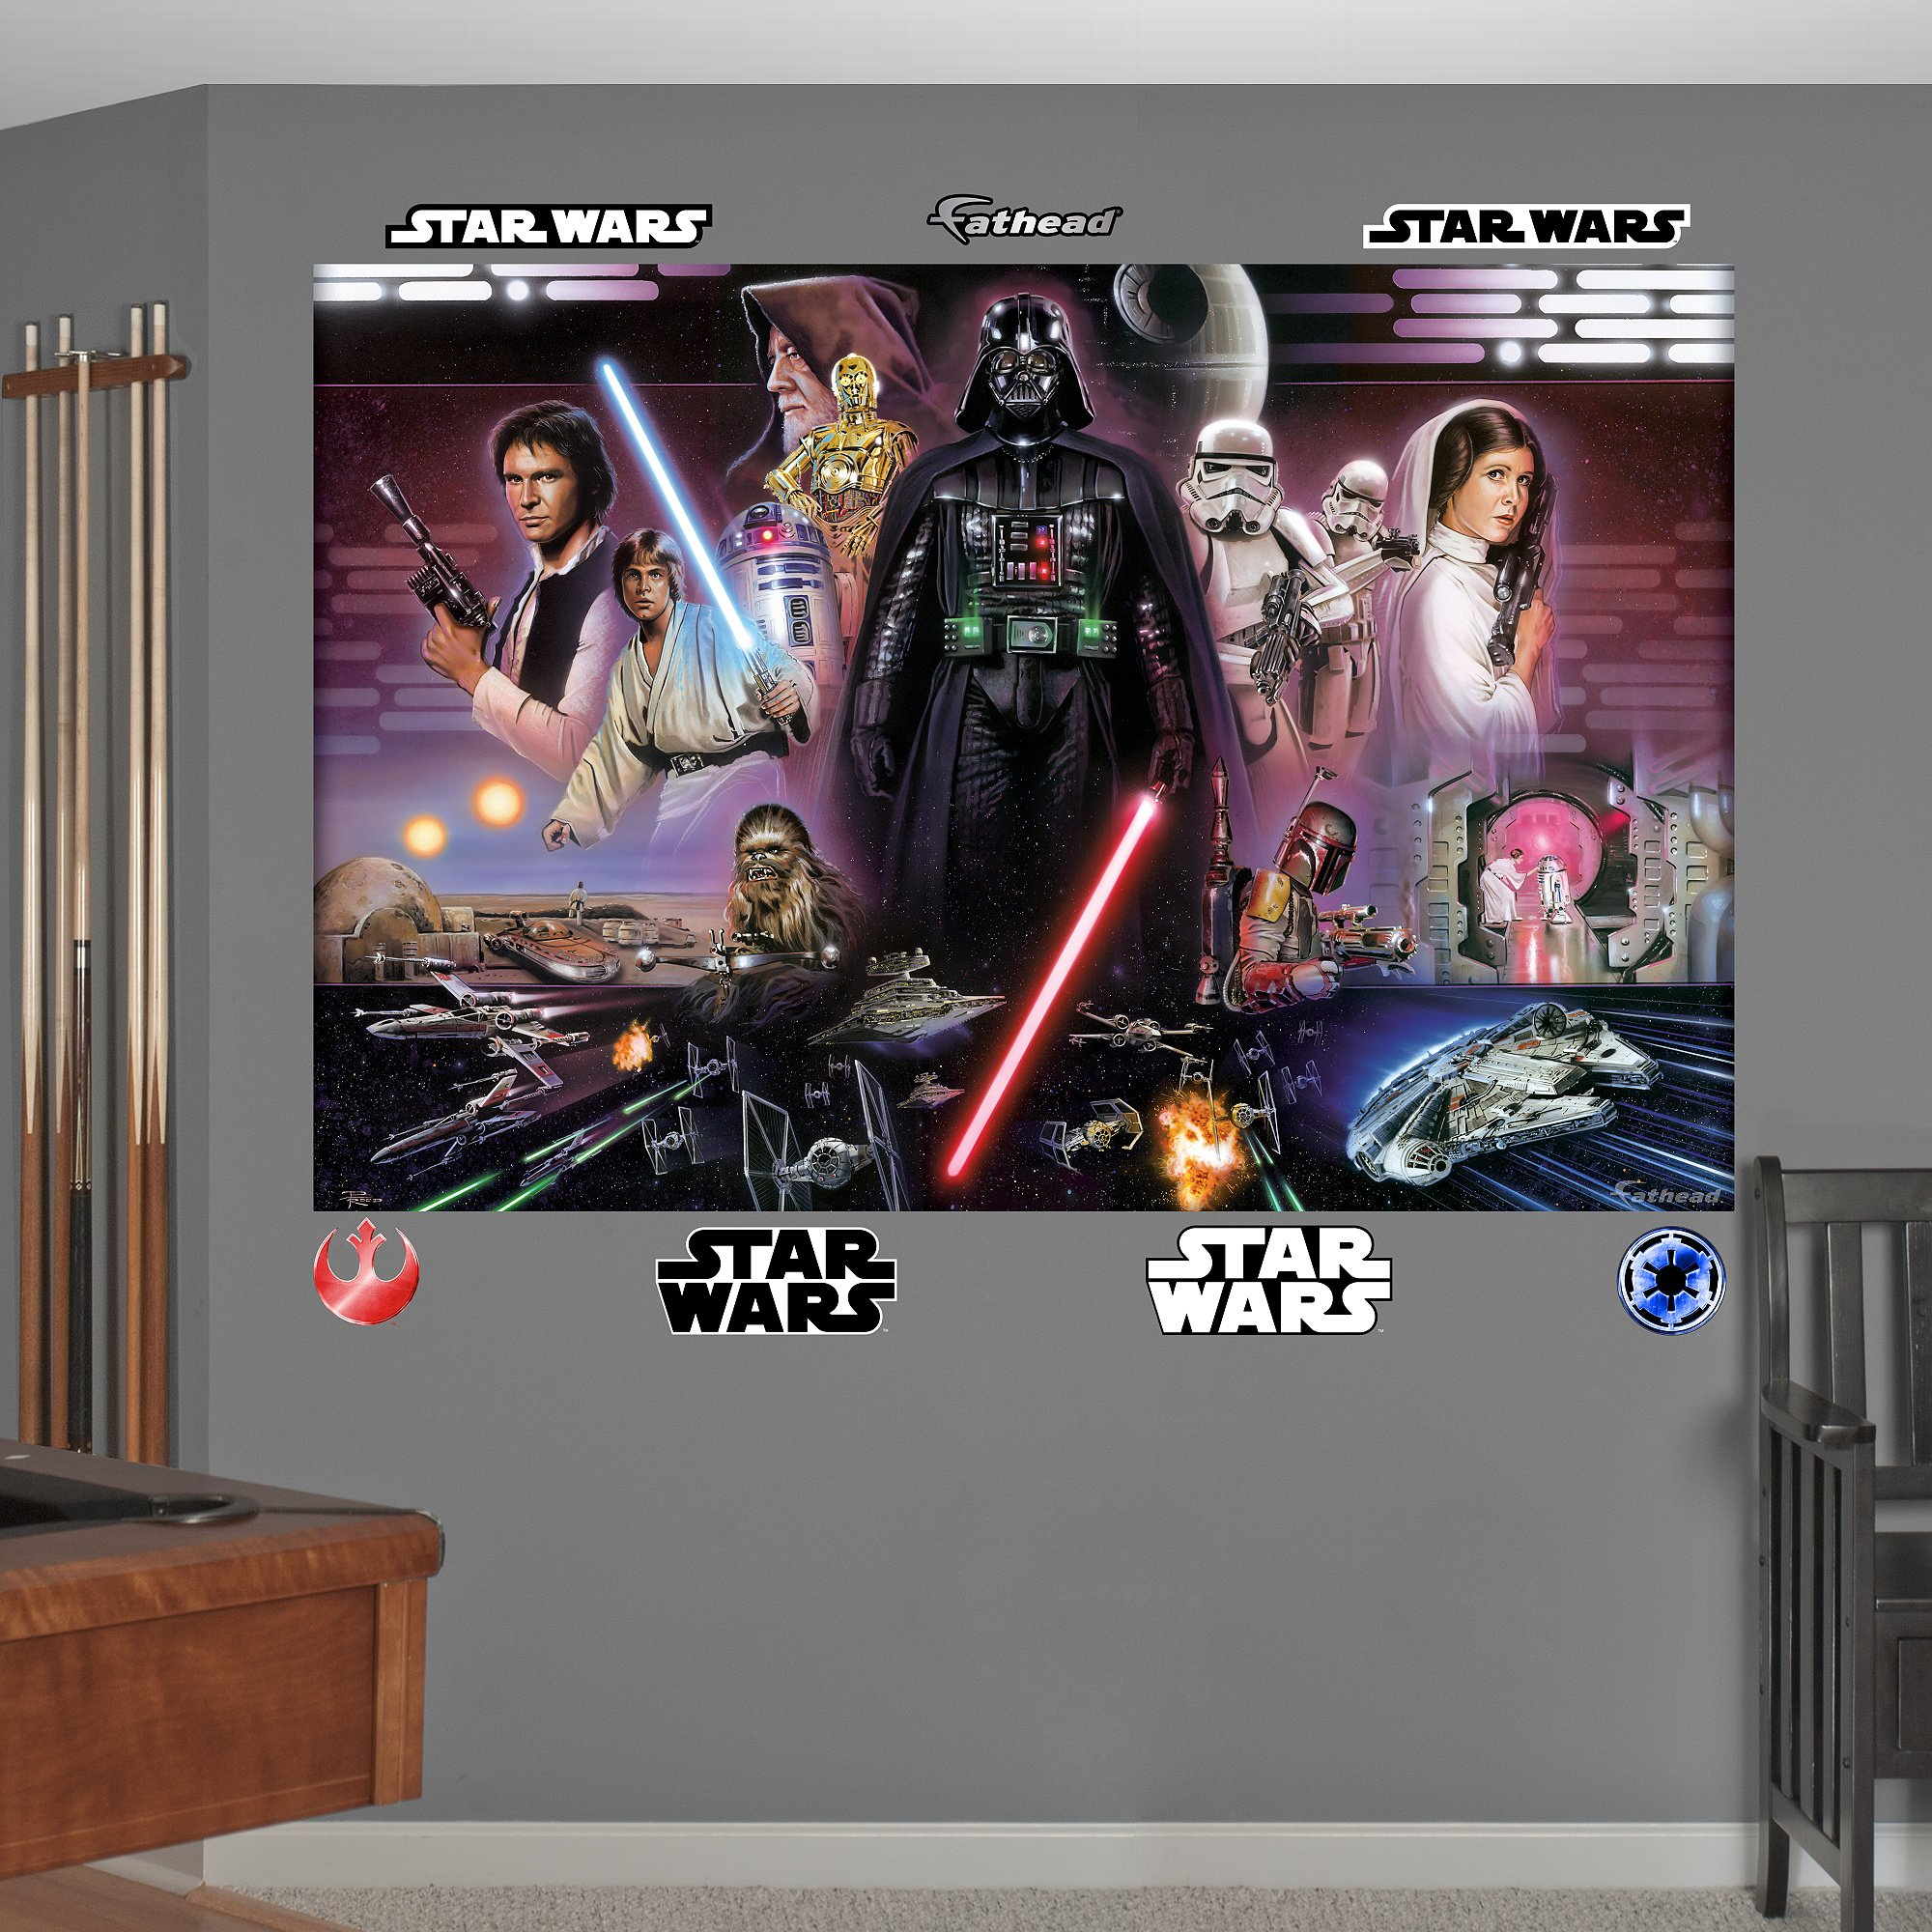 FATHEAD Star Wars Classic Mural Graphic Wall Décor